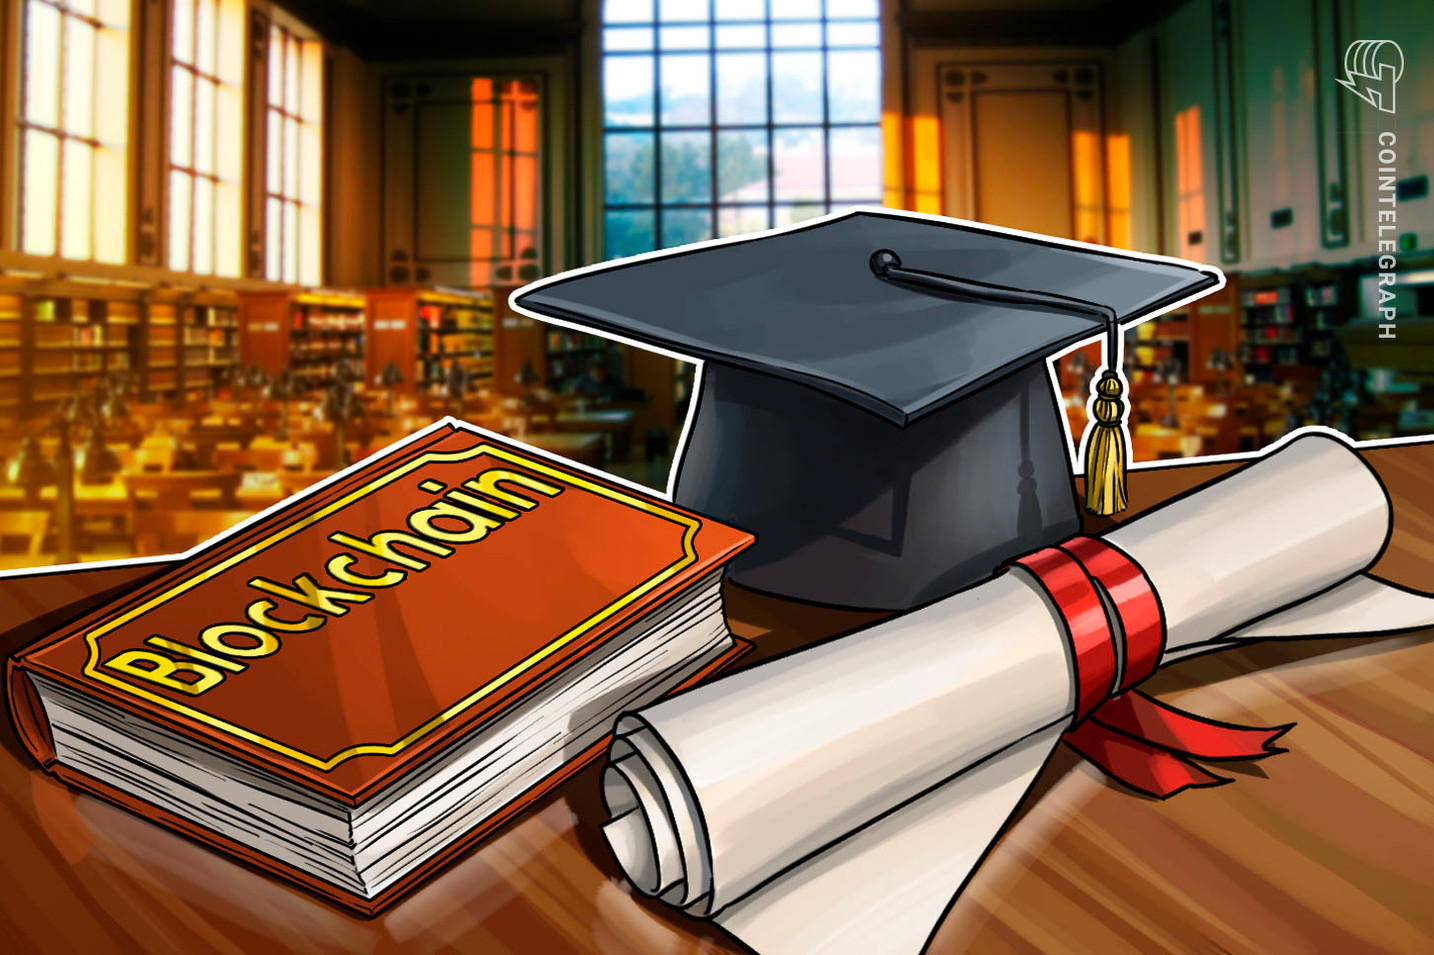 La University of California at Santa Barbara ha completato il suo primo corso sulla blockchain